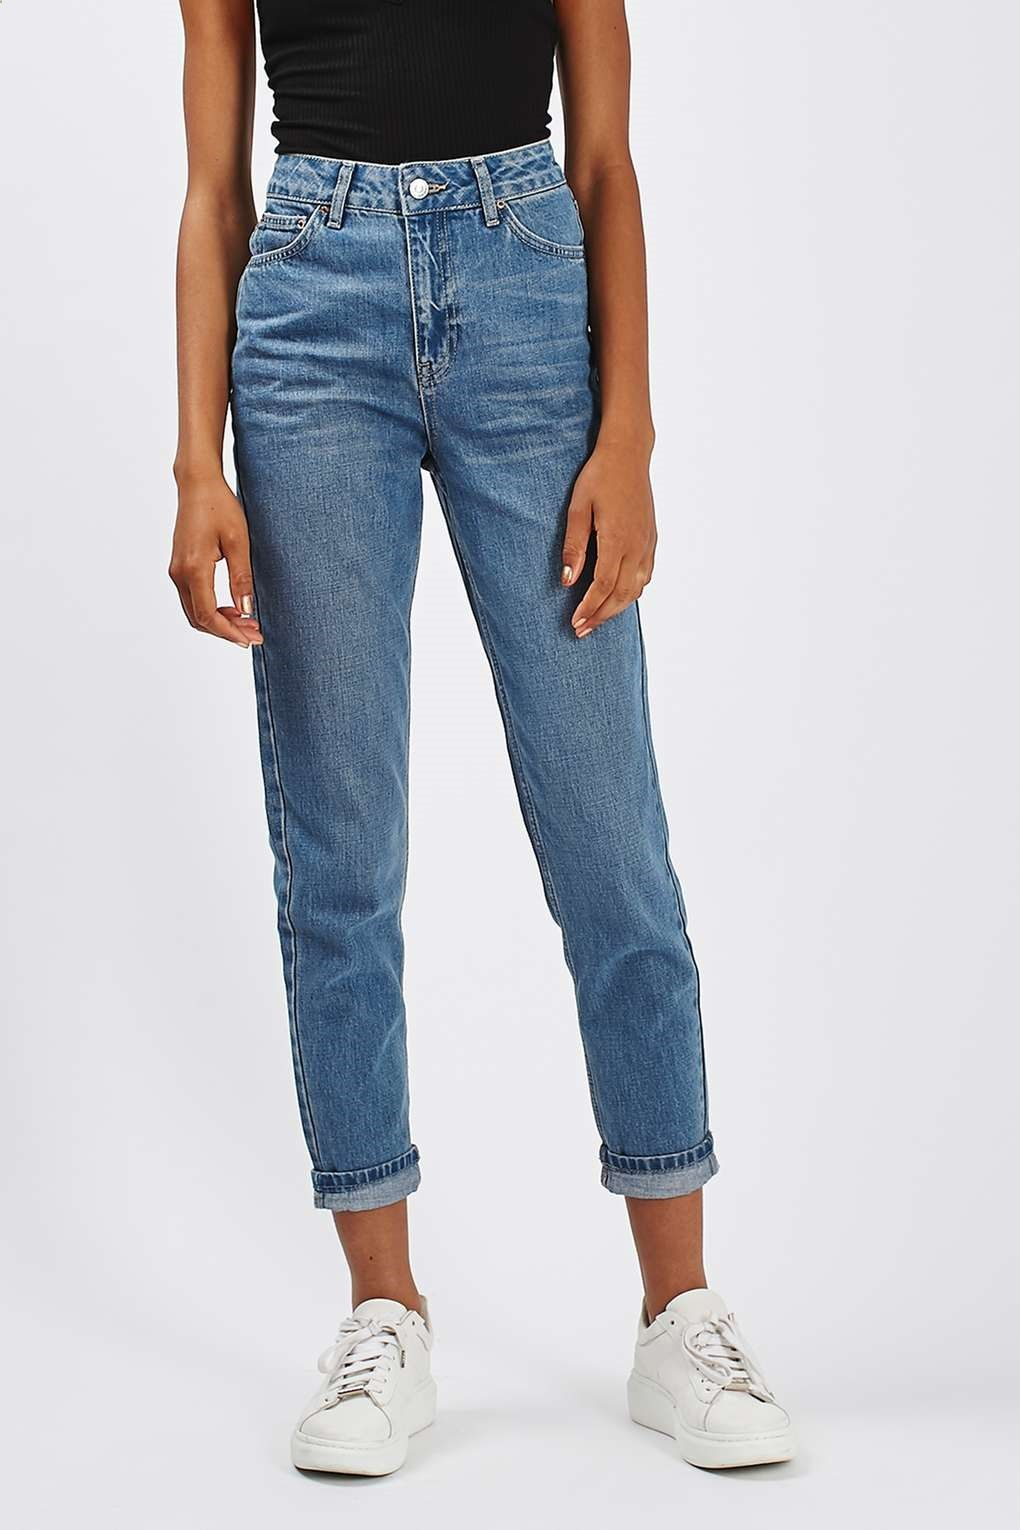 70004ef57331 MOTO Cheeky Rip Mom Jeans - New In This Week - New In | Clothes ...